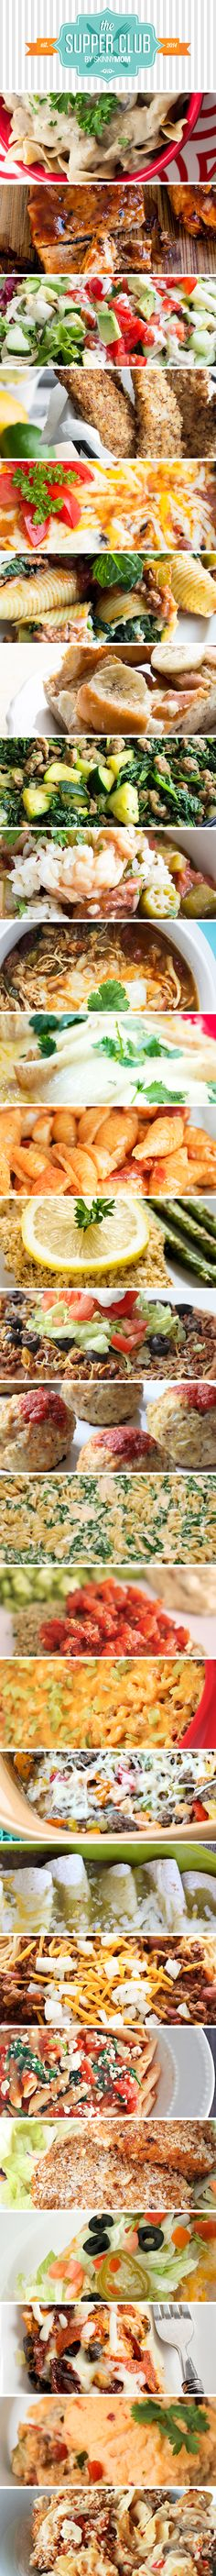 A month's worth of skinny, sensational dinners with calorie counts and Weight Watcher Plus Points®. Skinny Mom even provides weekly grocery lists and suggested side dishes!